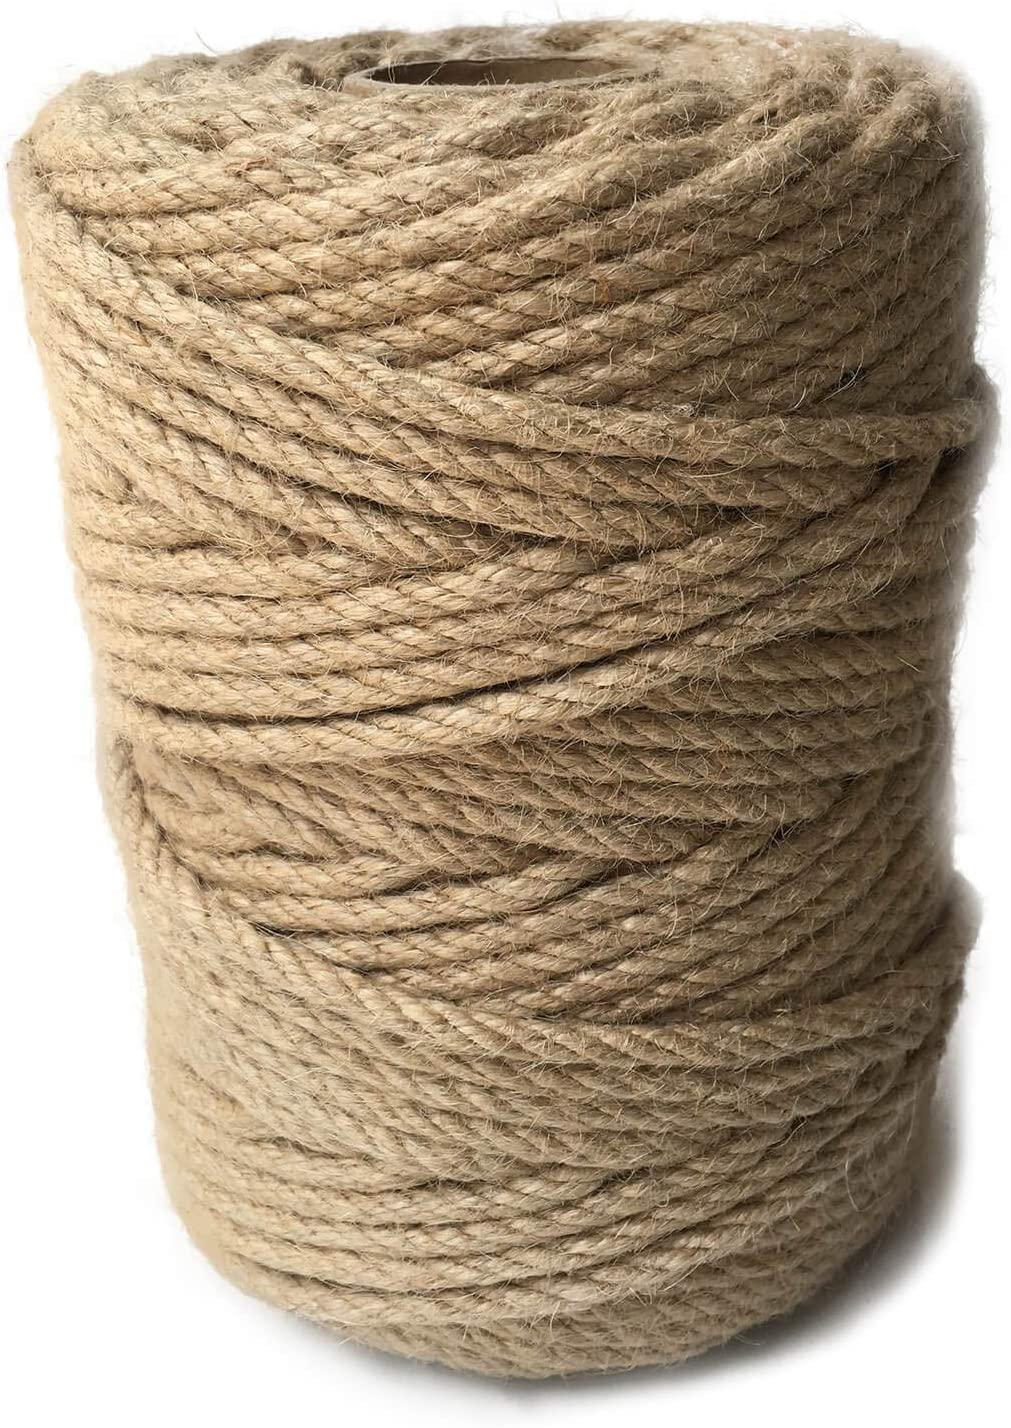 ILIKEEC 328 Feet Jute Rope service 6mm S Natural 4-Ply Thick 55% OFF Twine